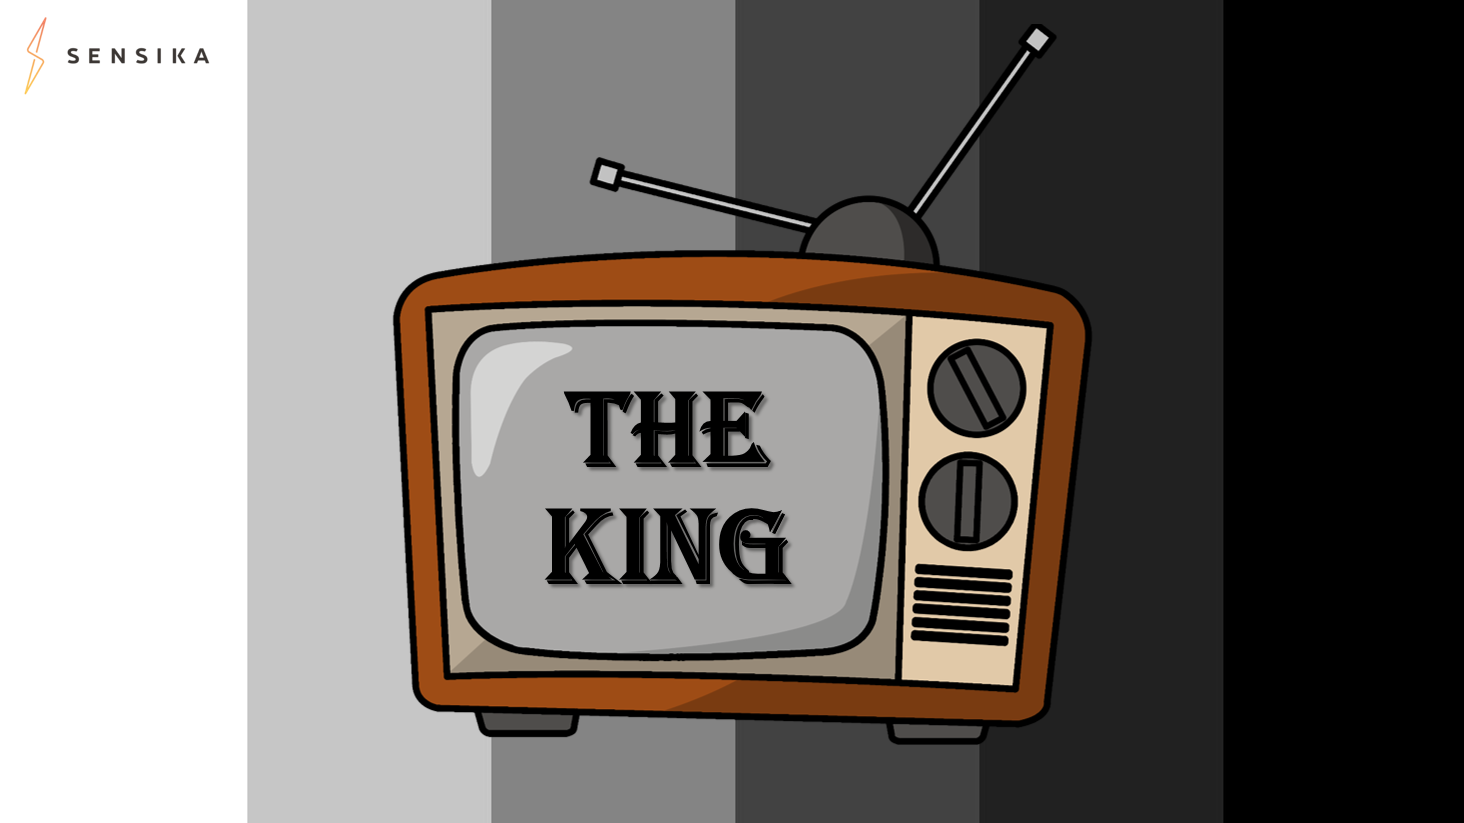 TV is the king, broadcast media